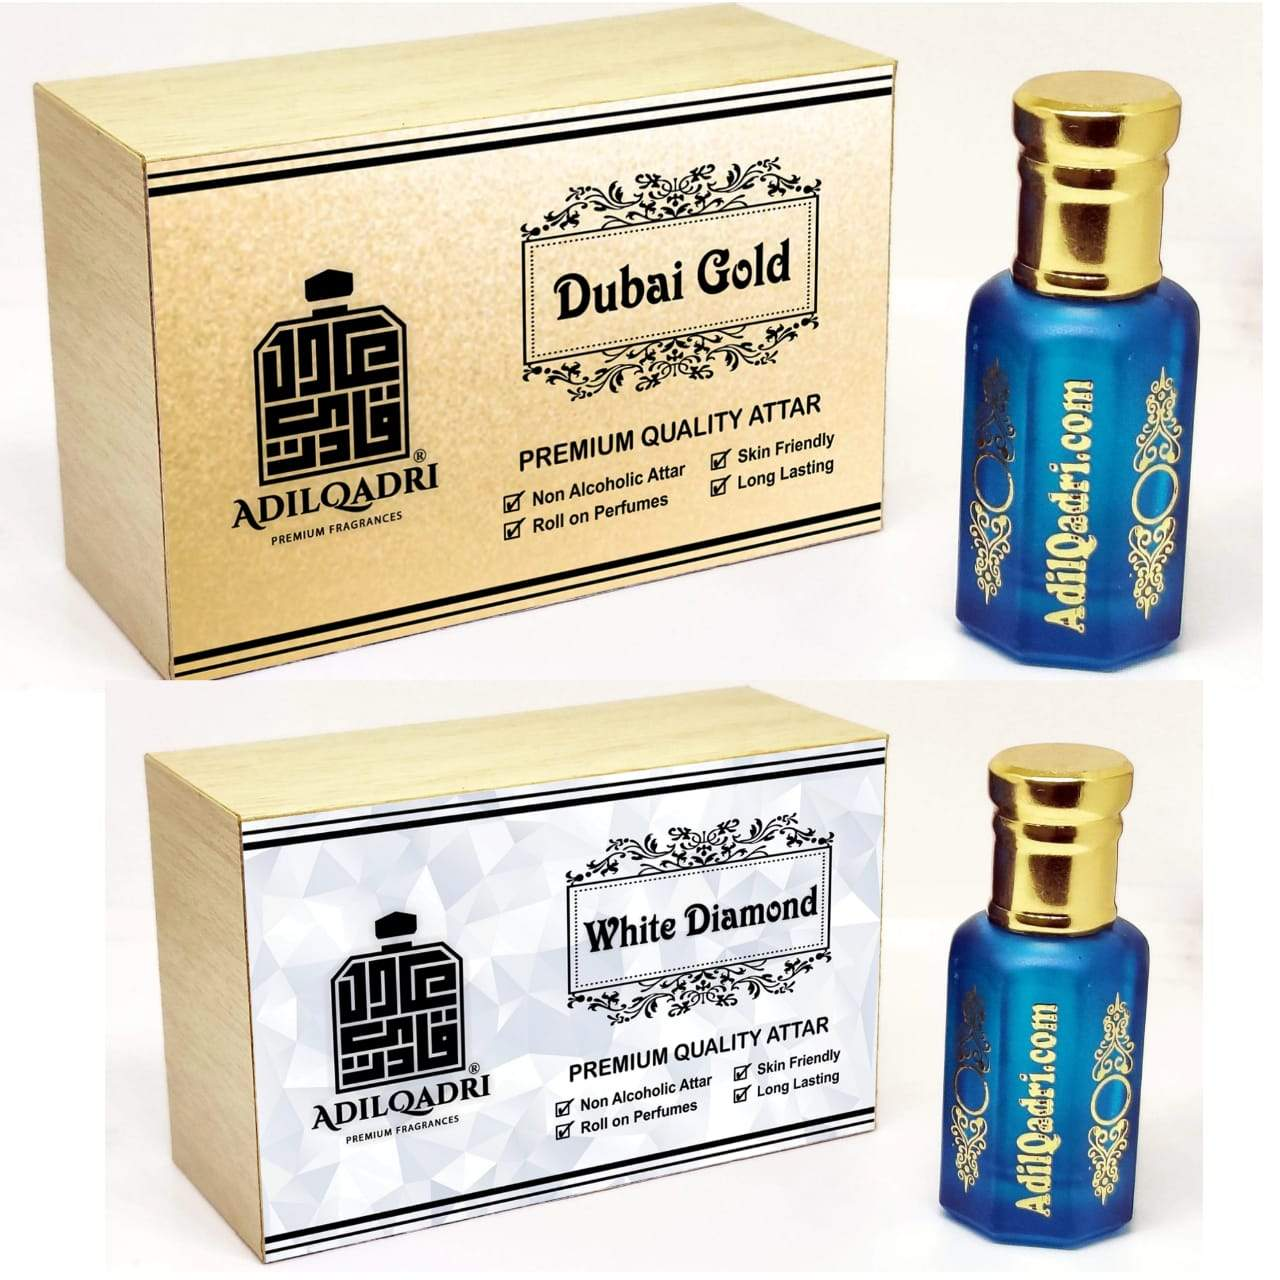 (Combo) Adilqadri White Dimond & Dubai Gold  Premium Quality 10 Ml Synthetic Attar With Atractive Wooden Box